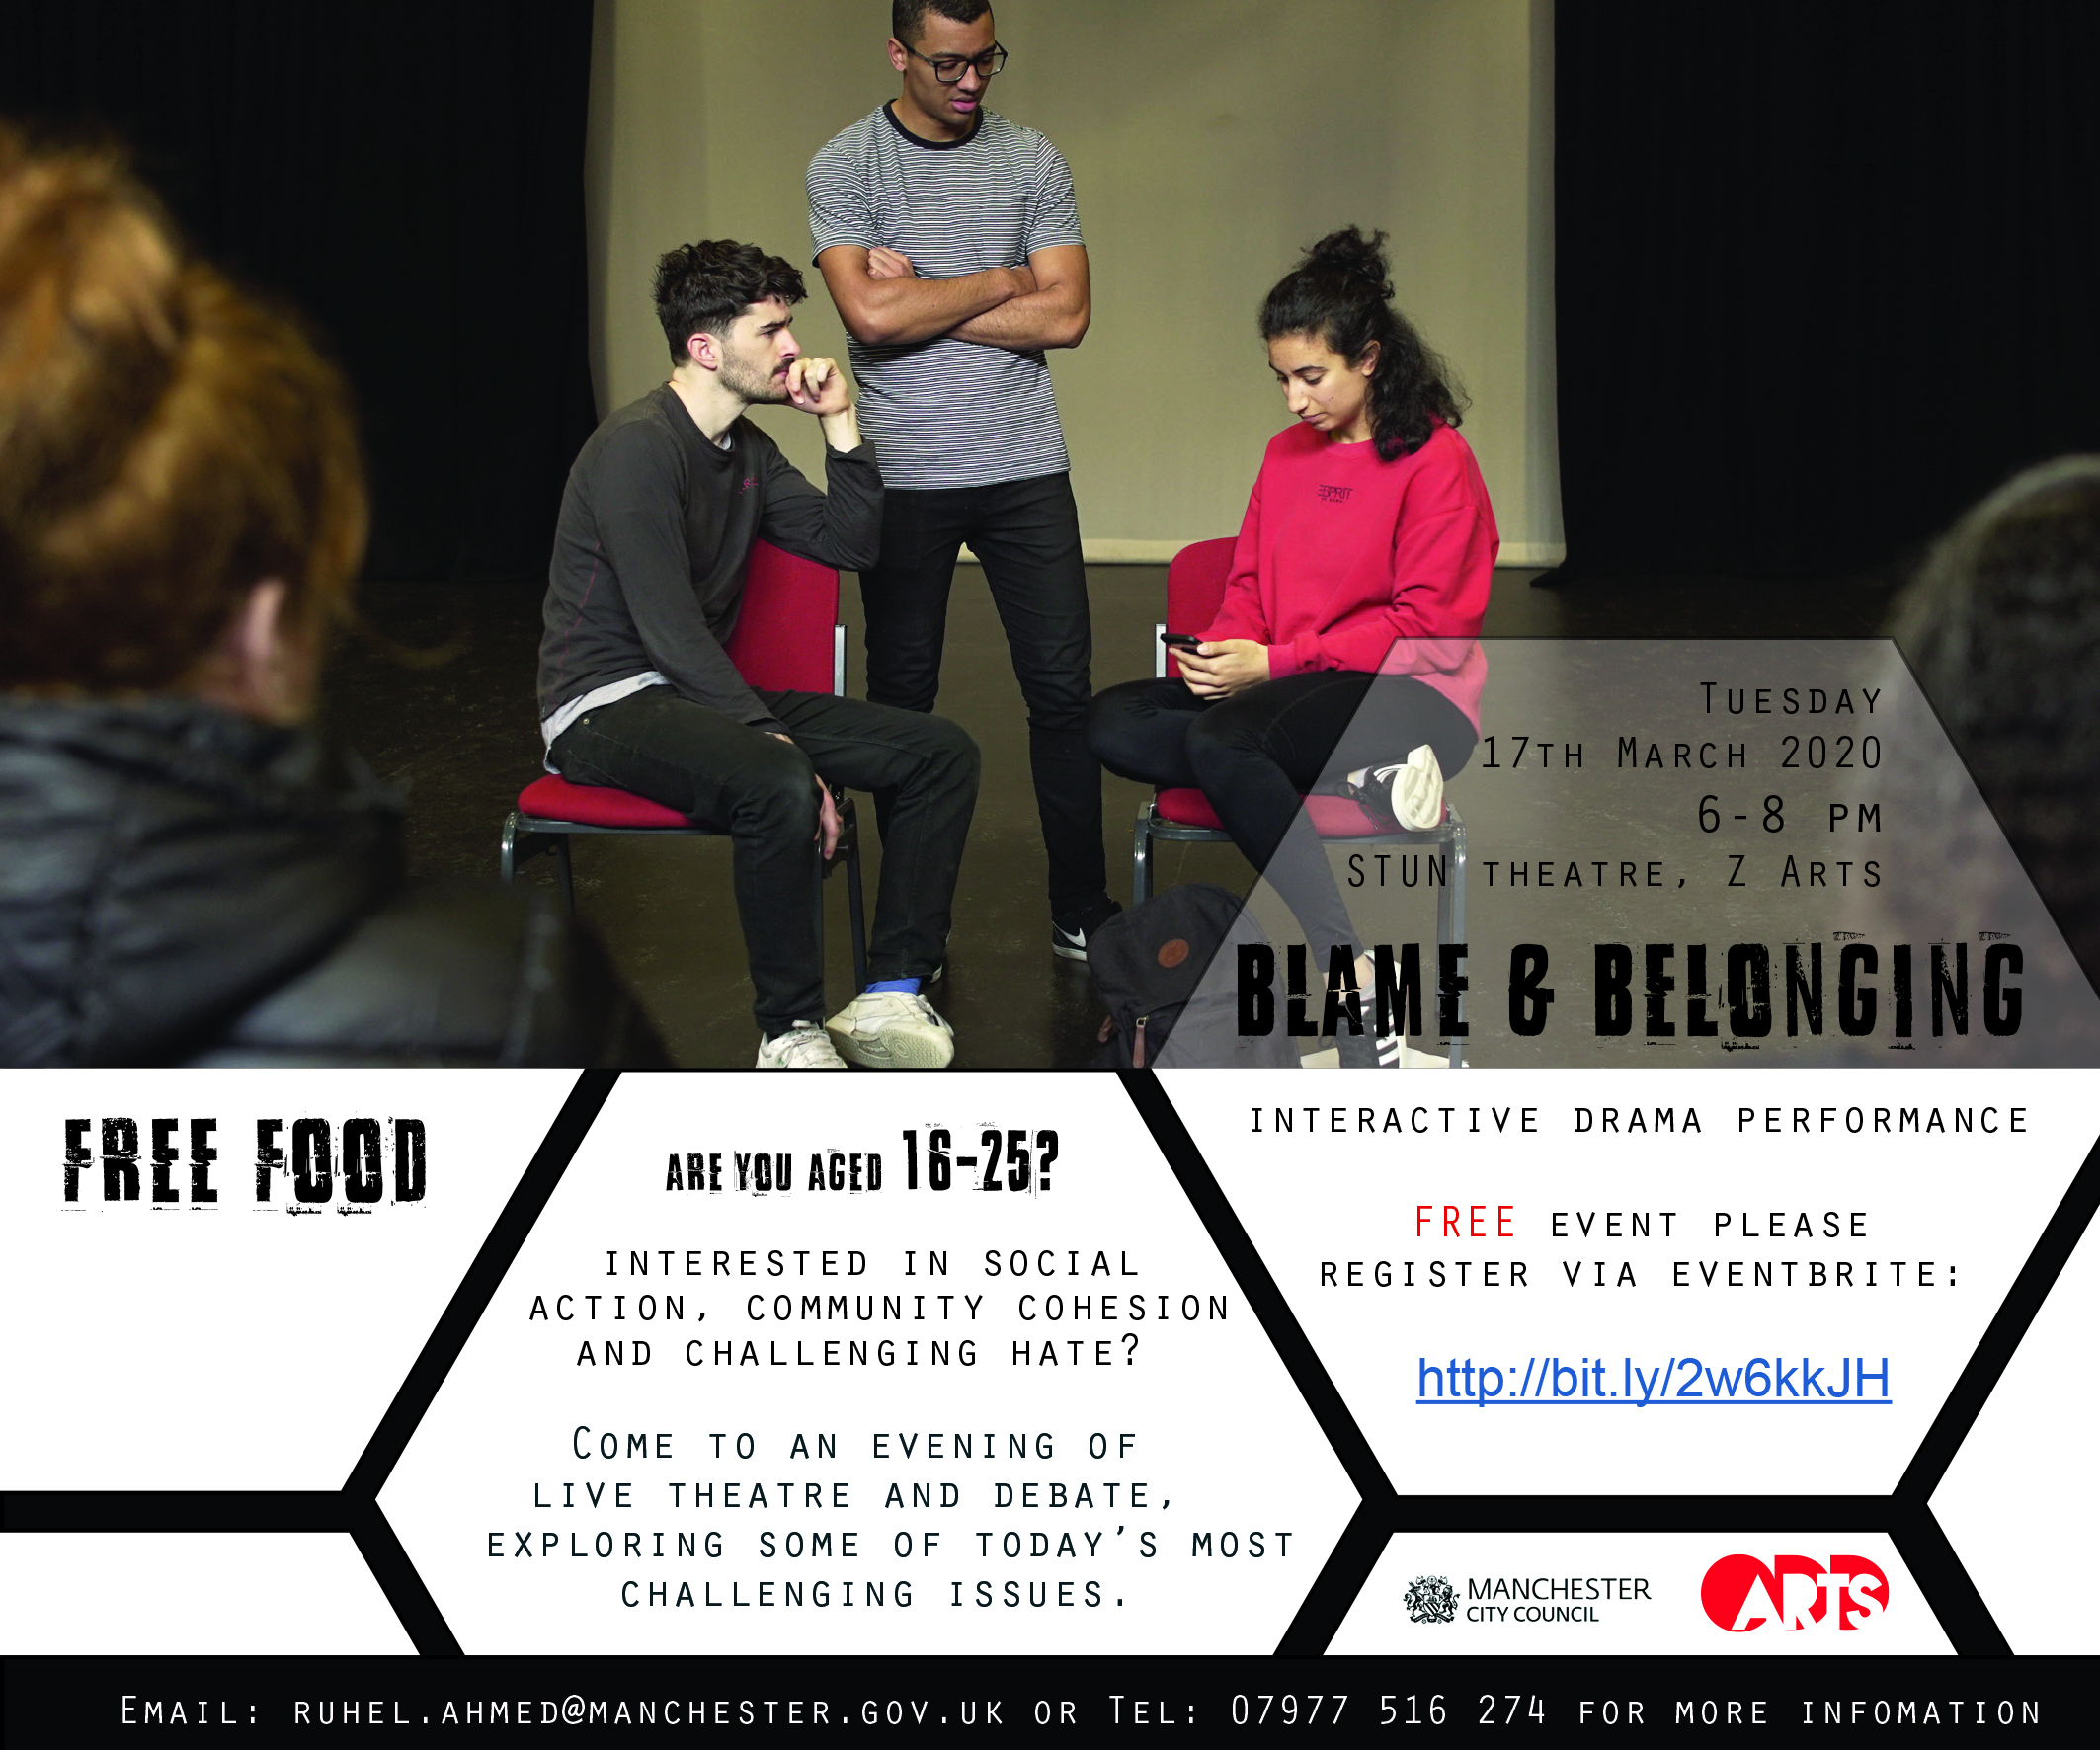 Blame and belonging – an interactive drama performance